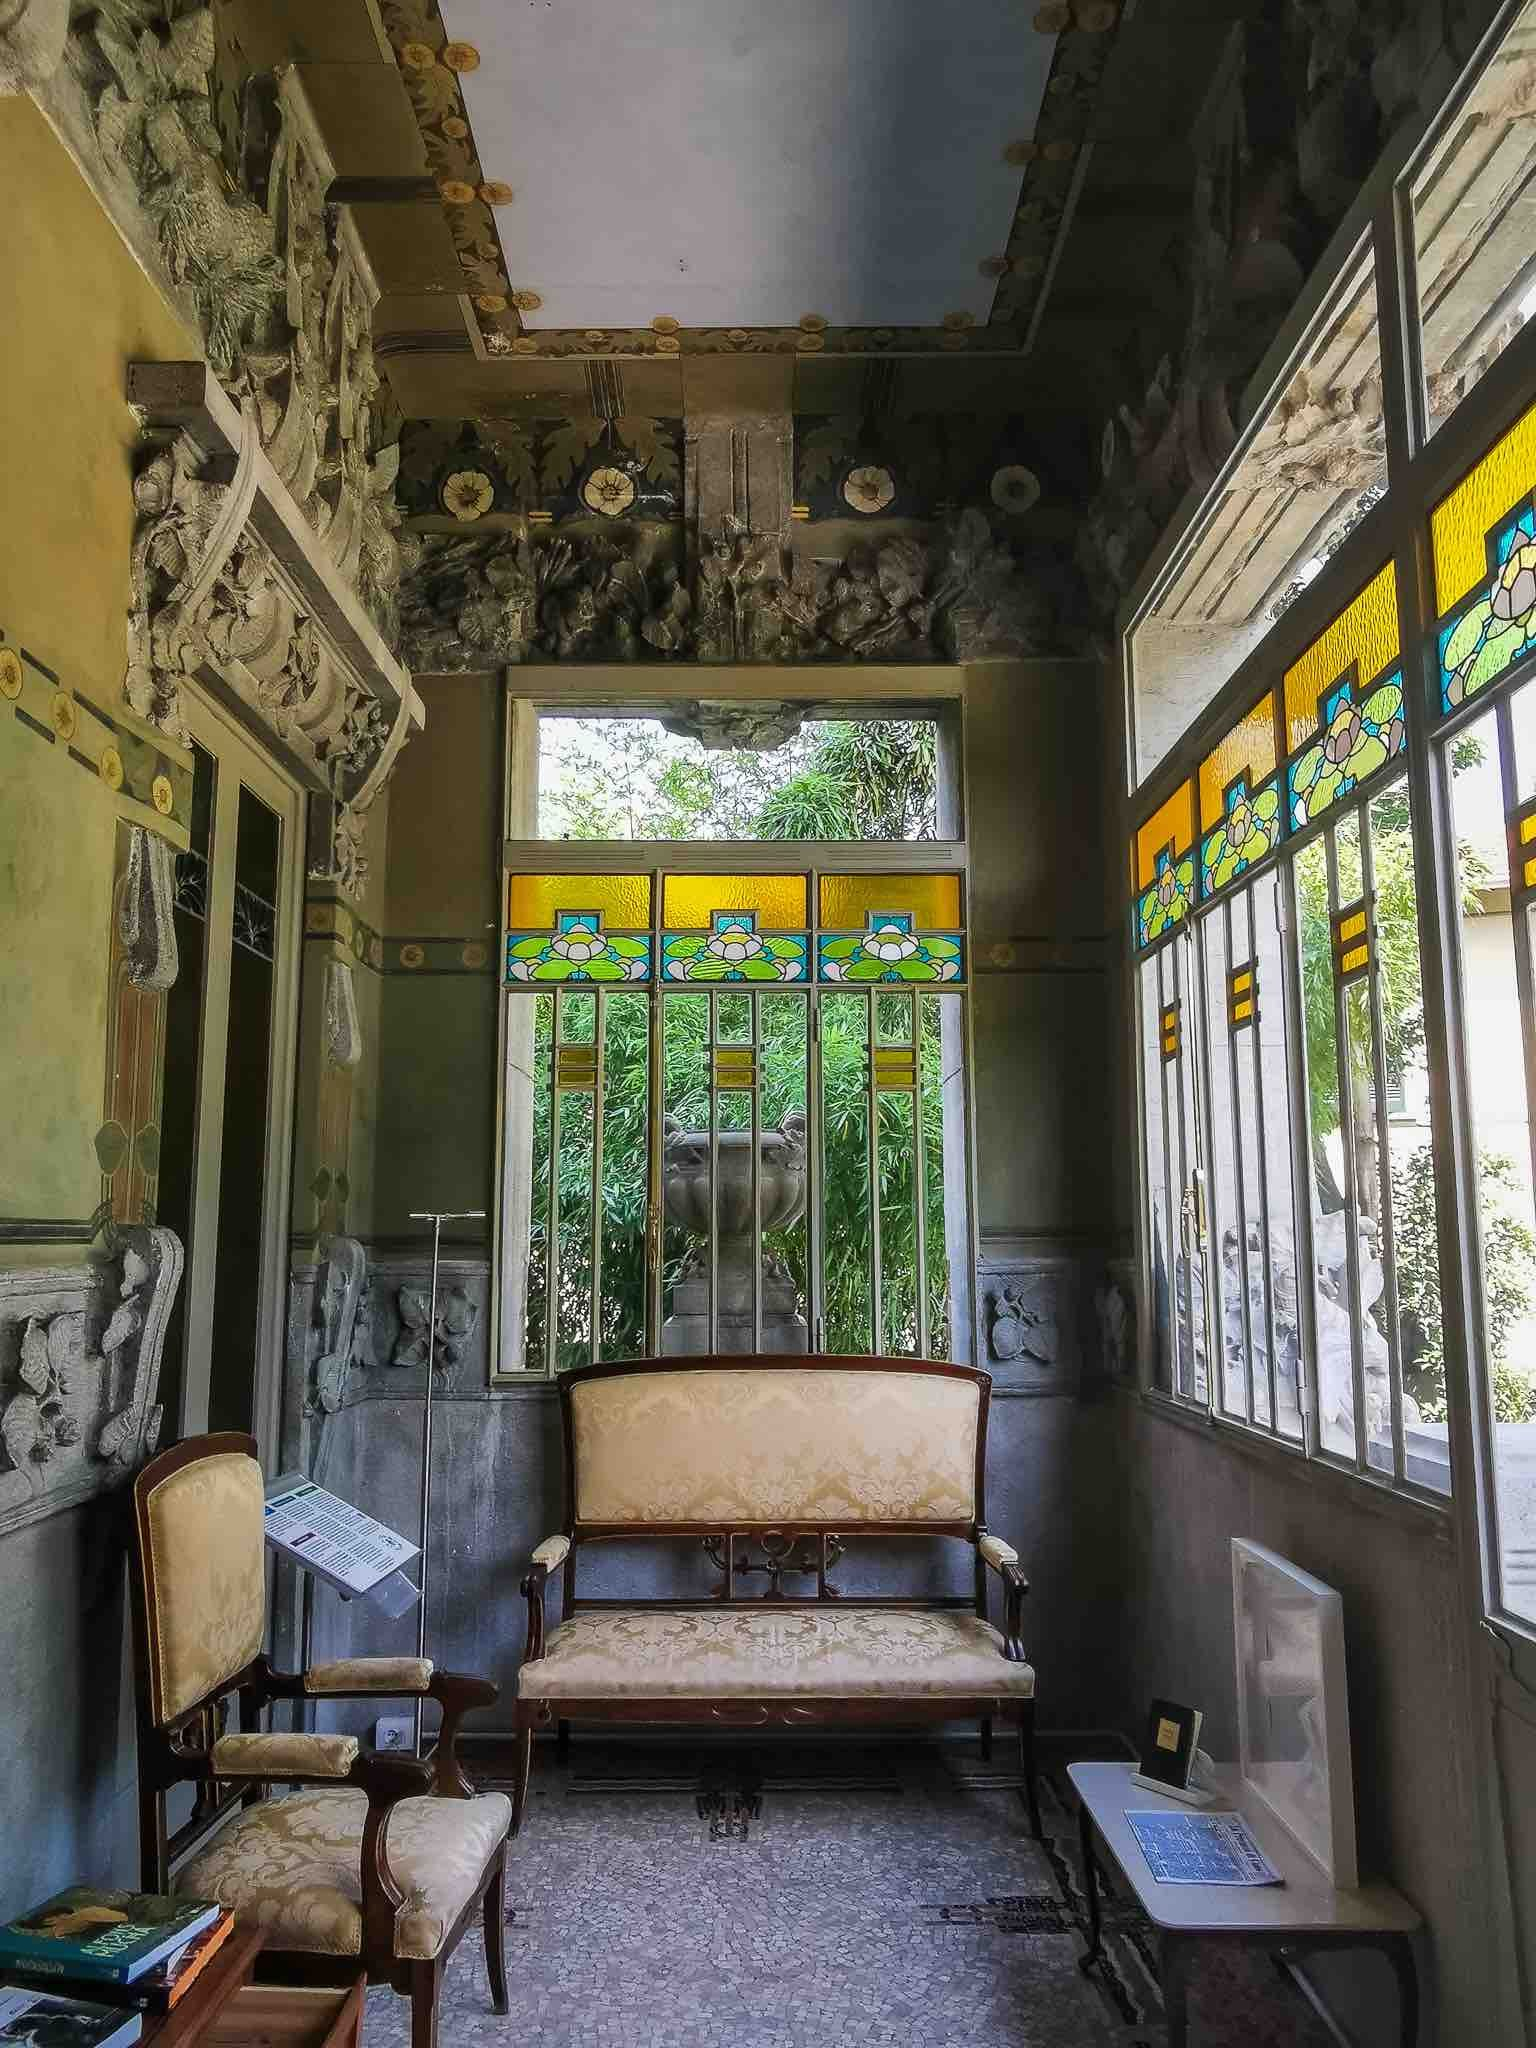 The stunning interiors of Villa Bernasconi, a rare example of Liberty style in Lake Como